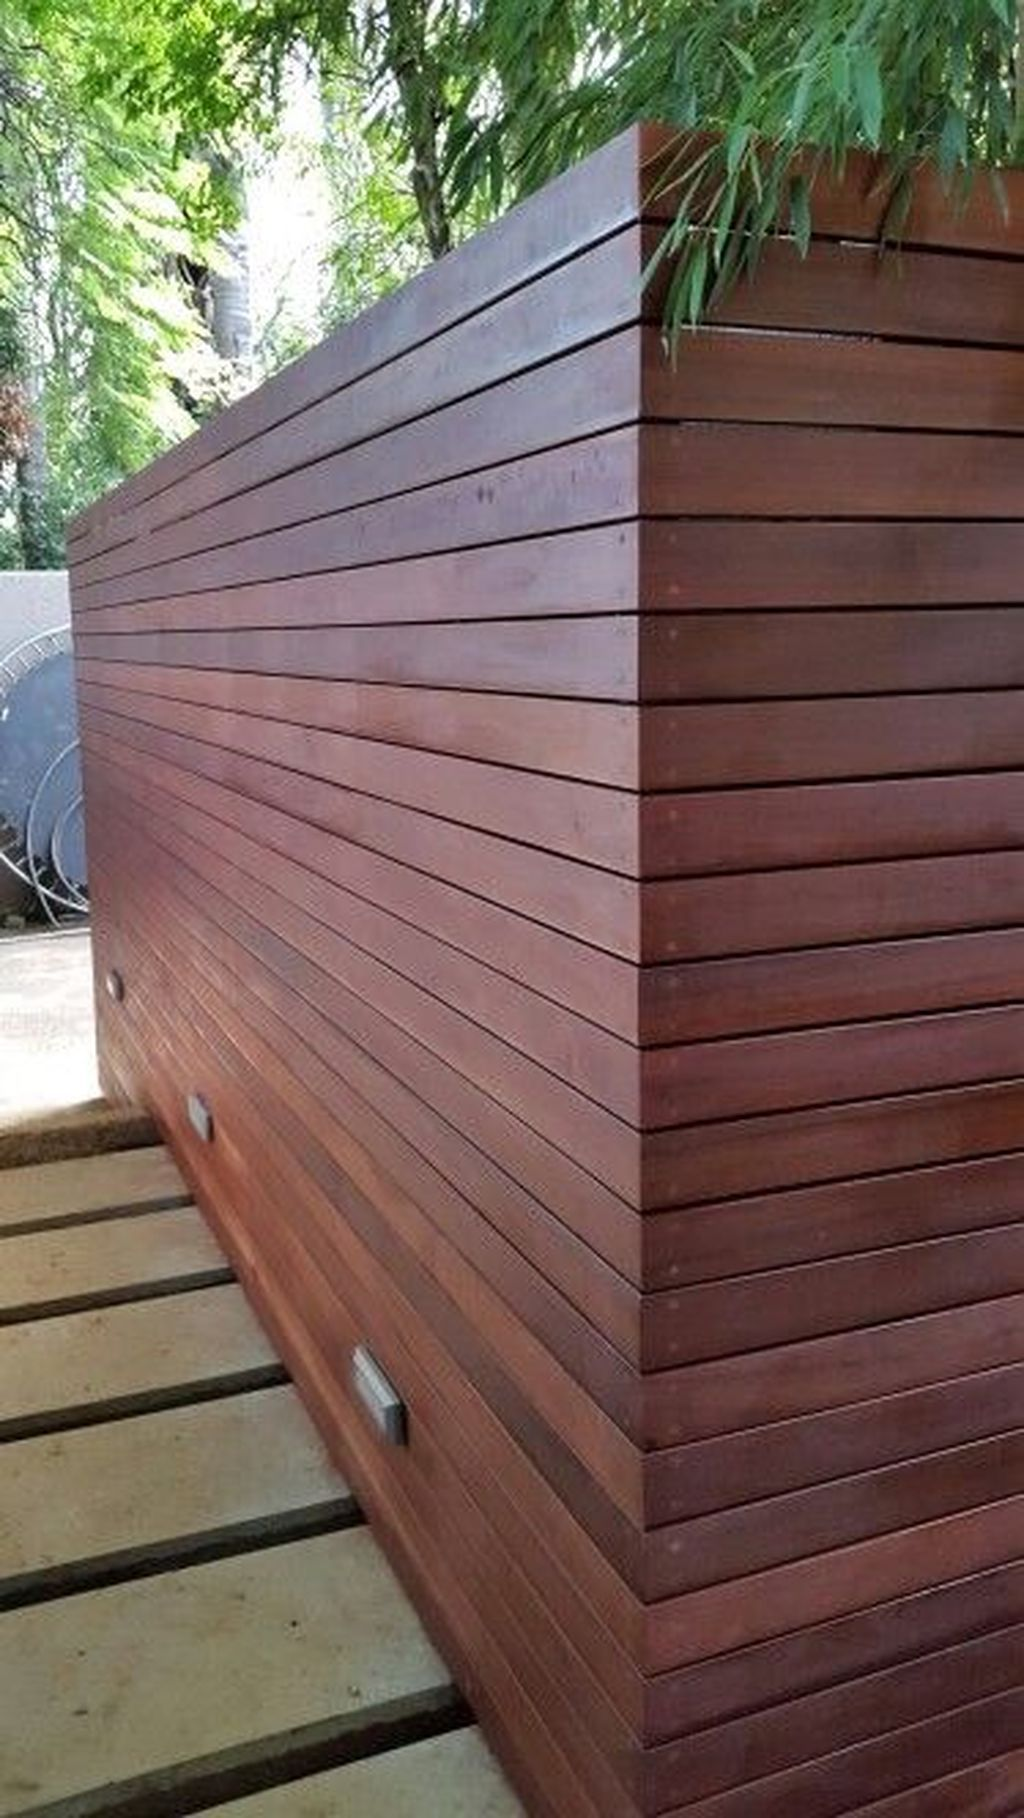 32 cute outdoor shower design ideas with wood elements in